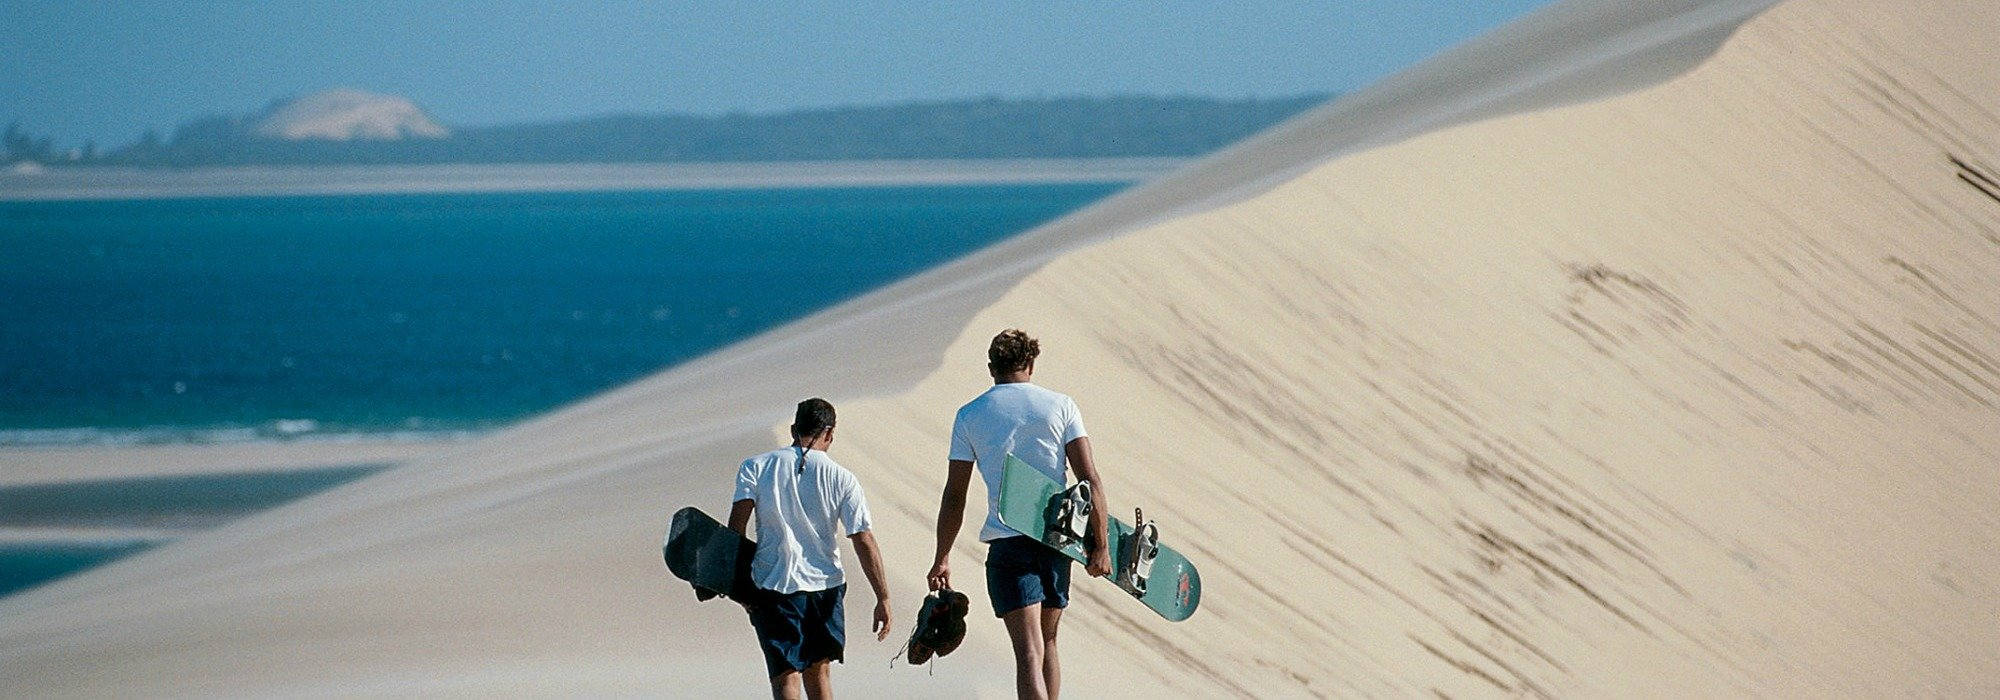 Dune Boarding Mozambique